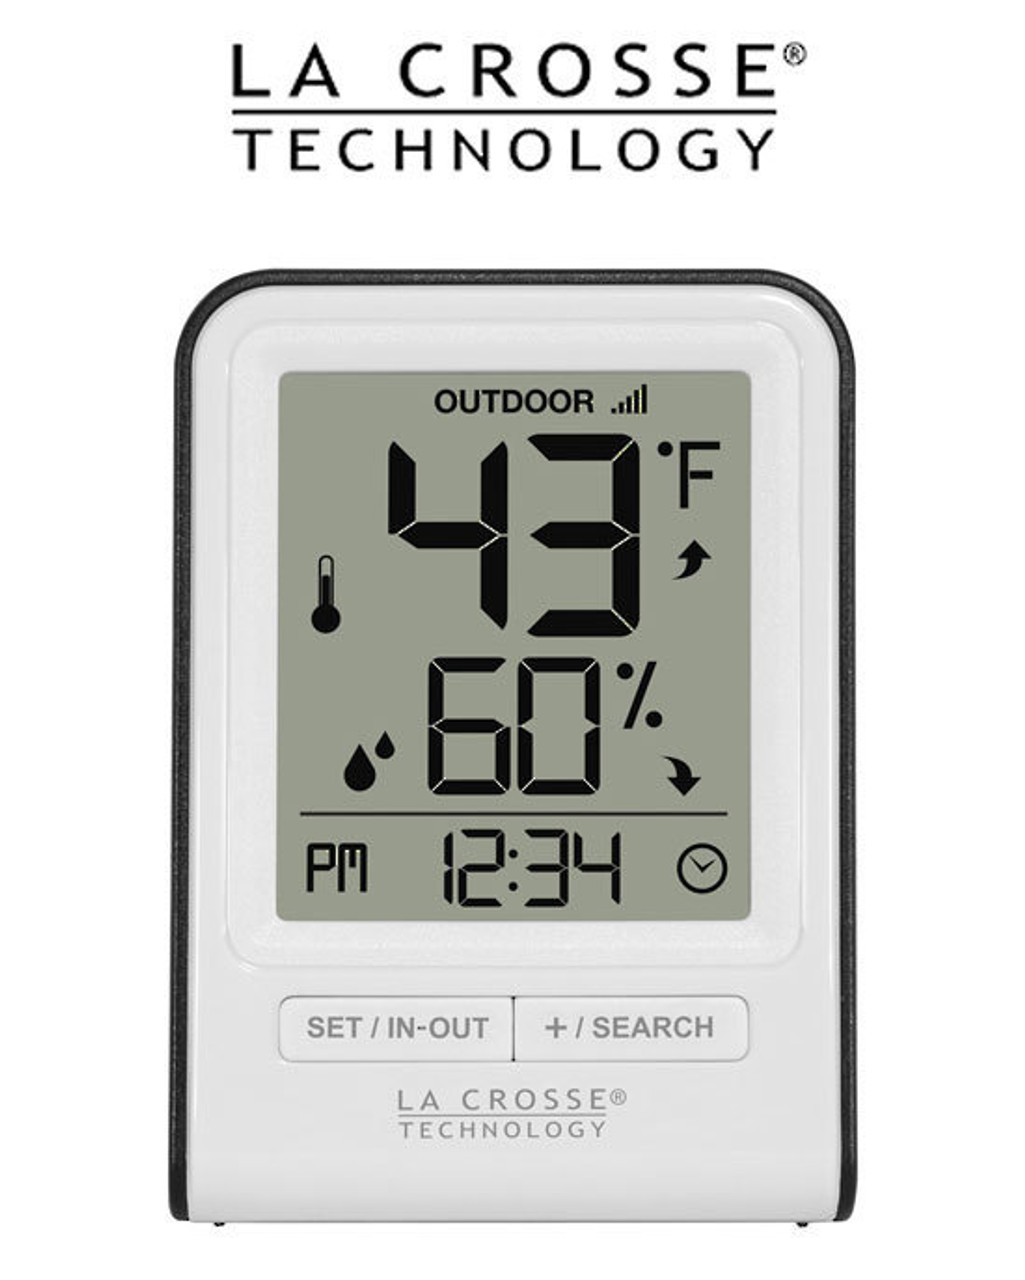 C83100 La Crosse Complete Personal WiFi Weather Station with Accuweather